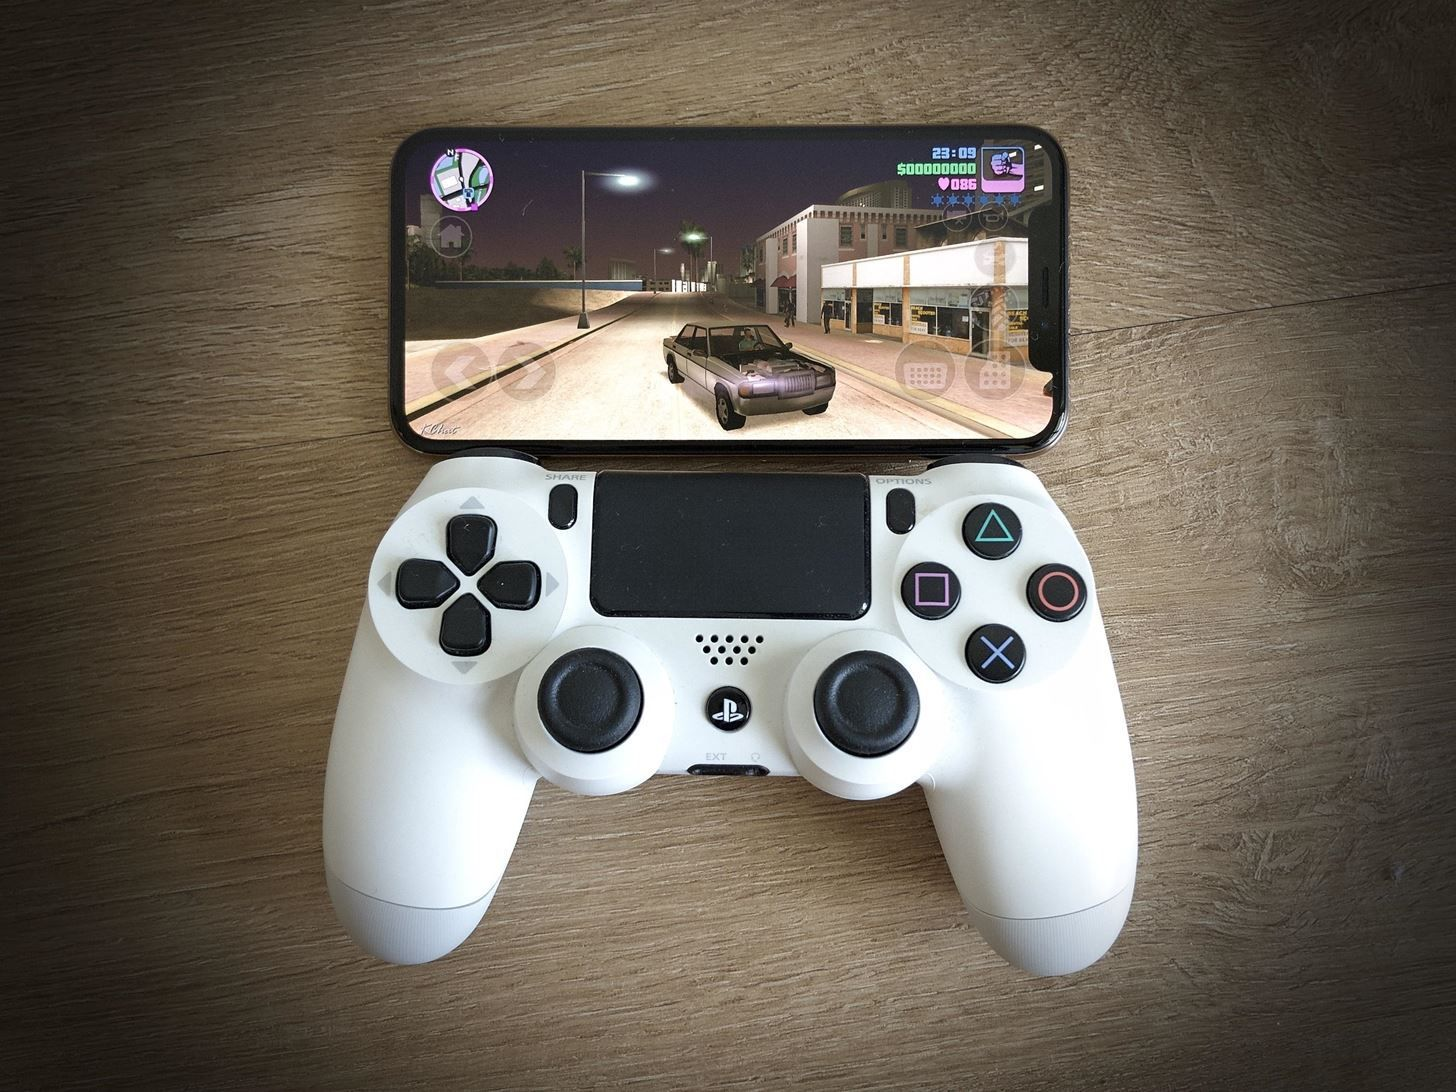 How to connect your ps4 controller to your iphone for